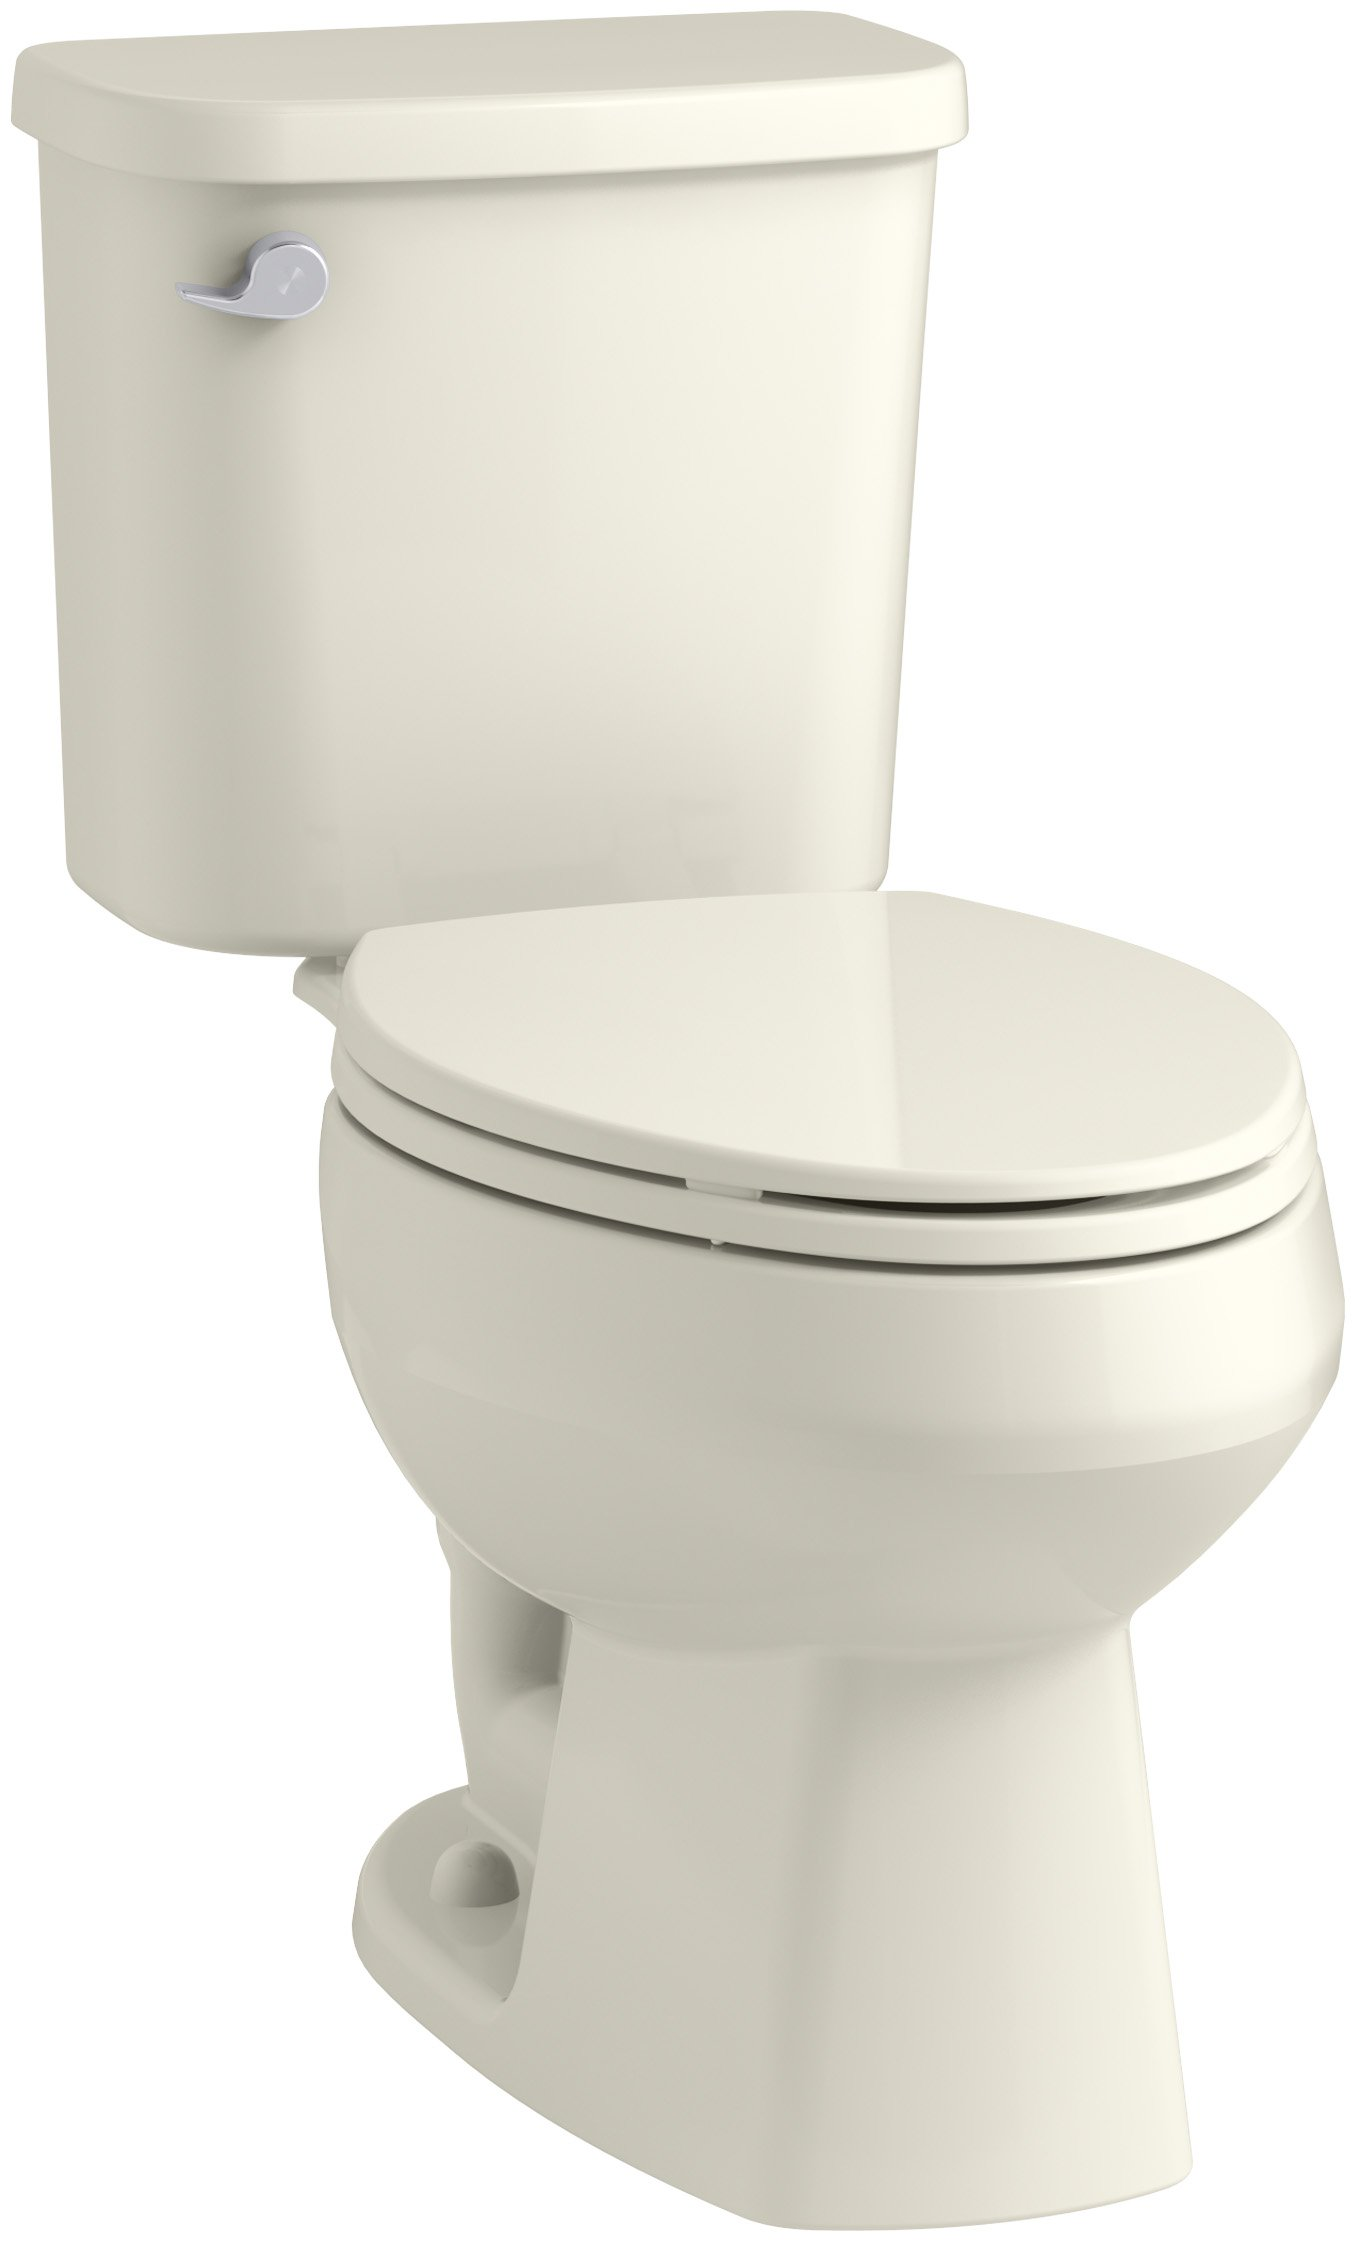 STERLING, a KOHLER Company Windham 12-Inch Rough-In Elongated Toilet with Pro Force Technology, Biscuit by STERLING, a KOHLER Company